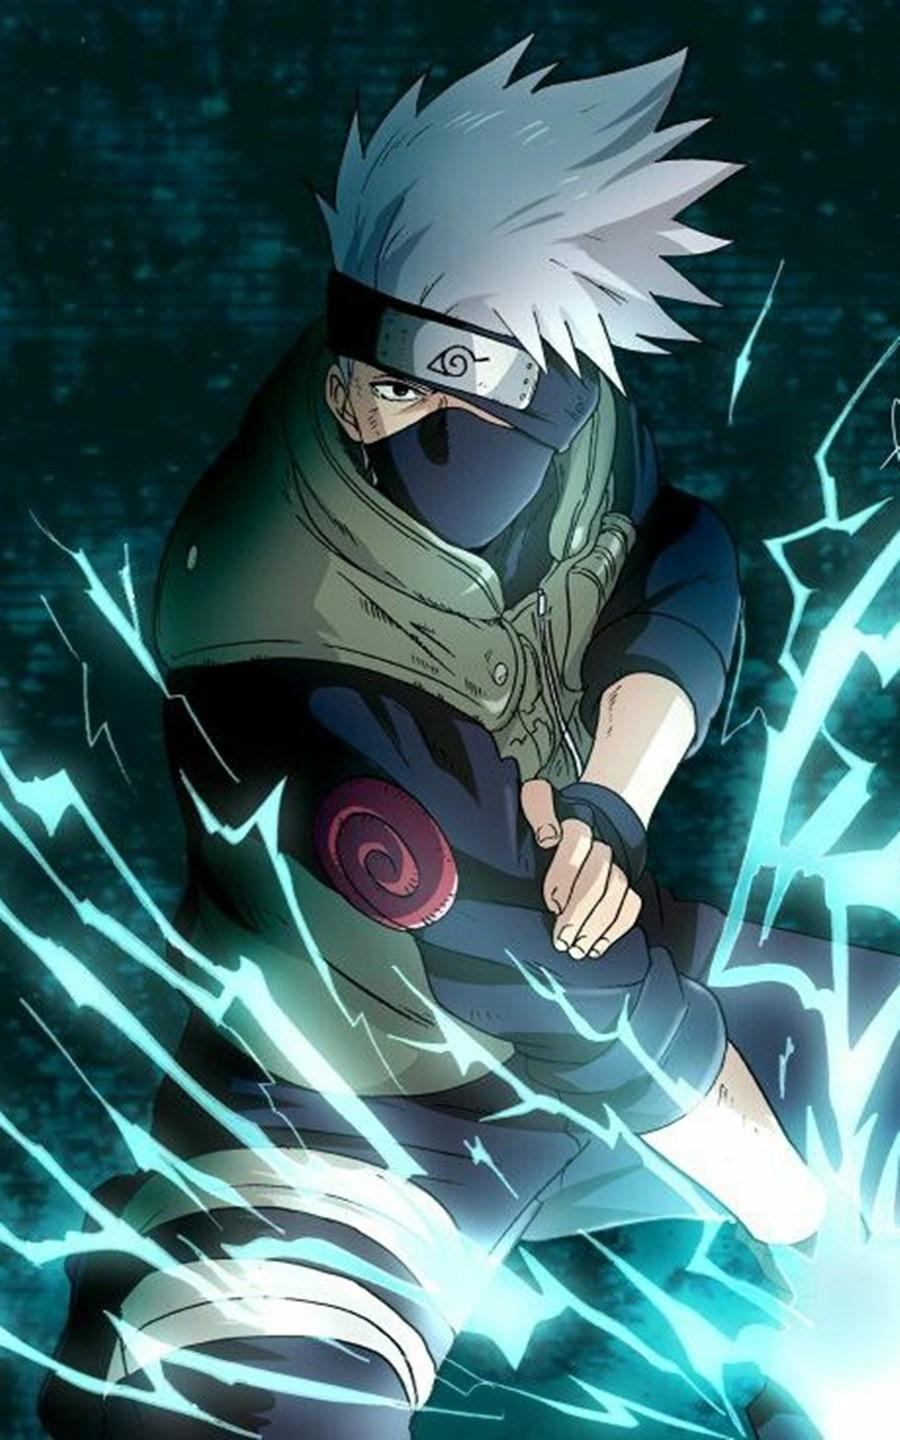 ... Kakashi Hatake Wallpaper screenshot 7